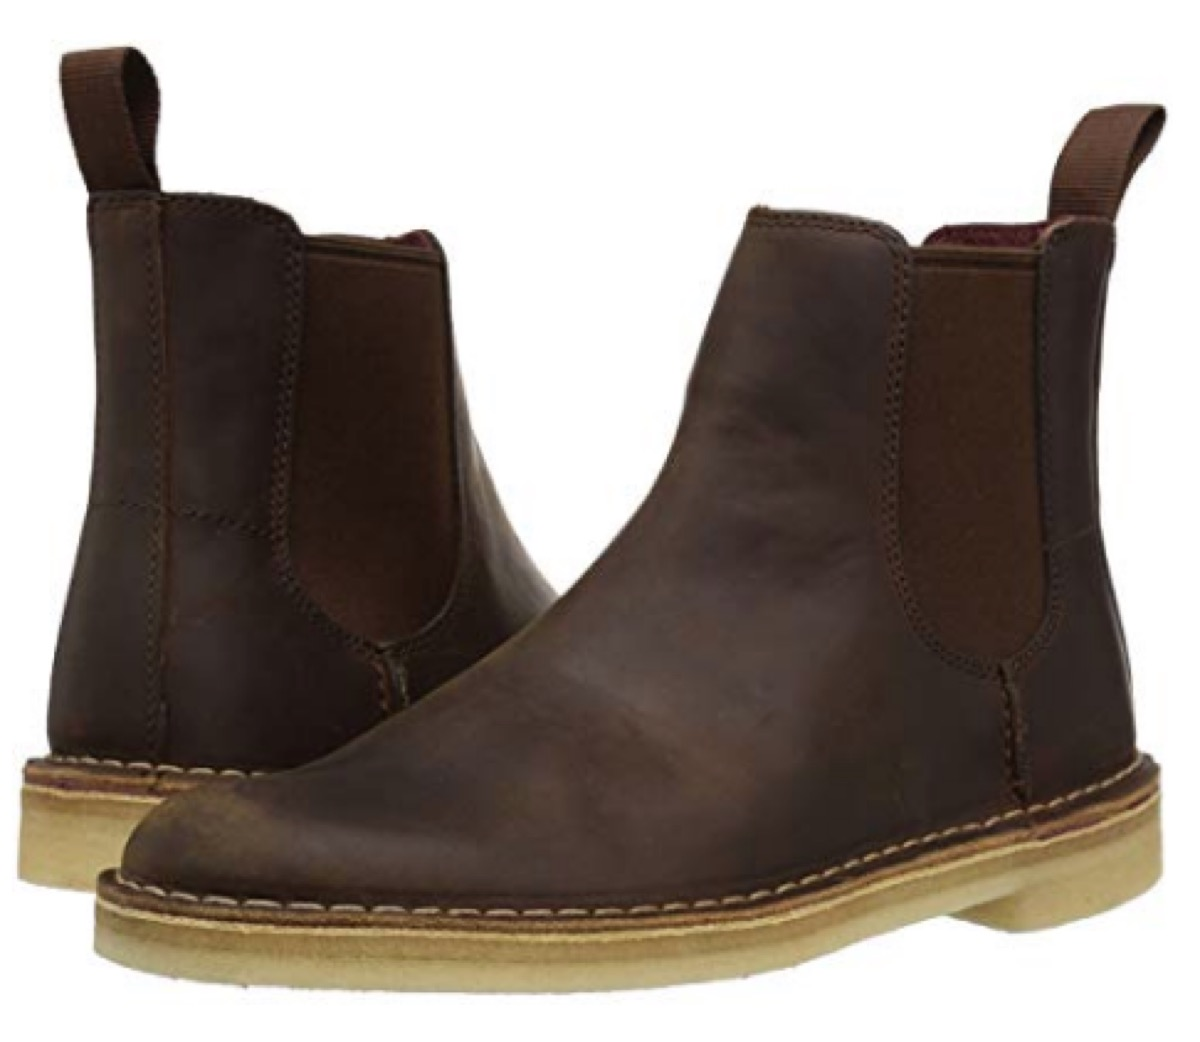 Clarks Chelsea Boots buy after holidays